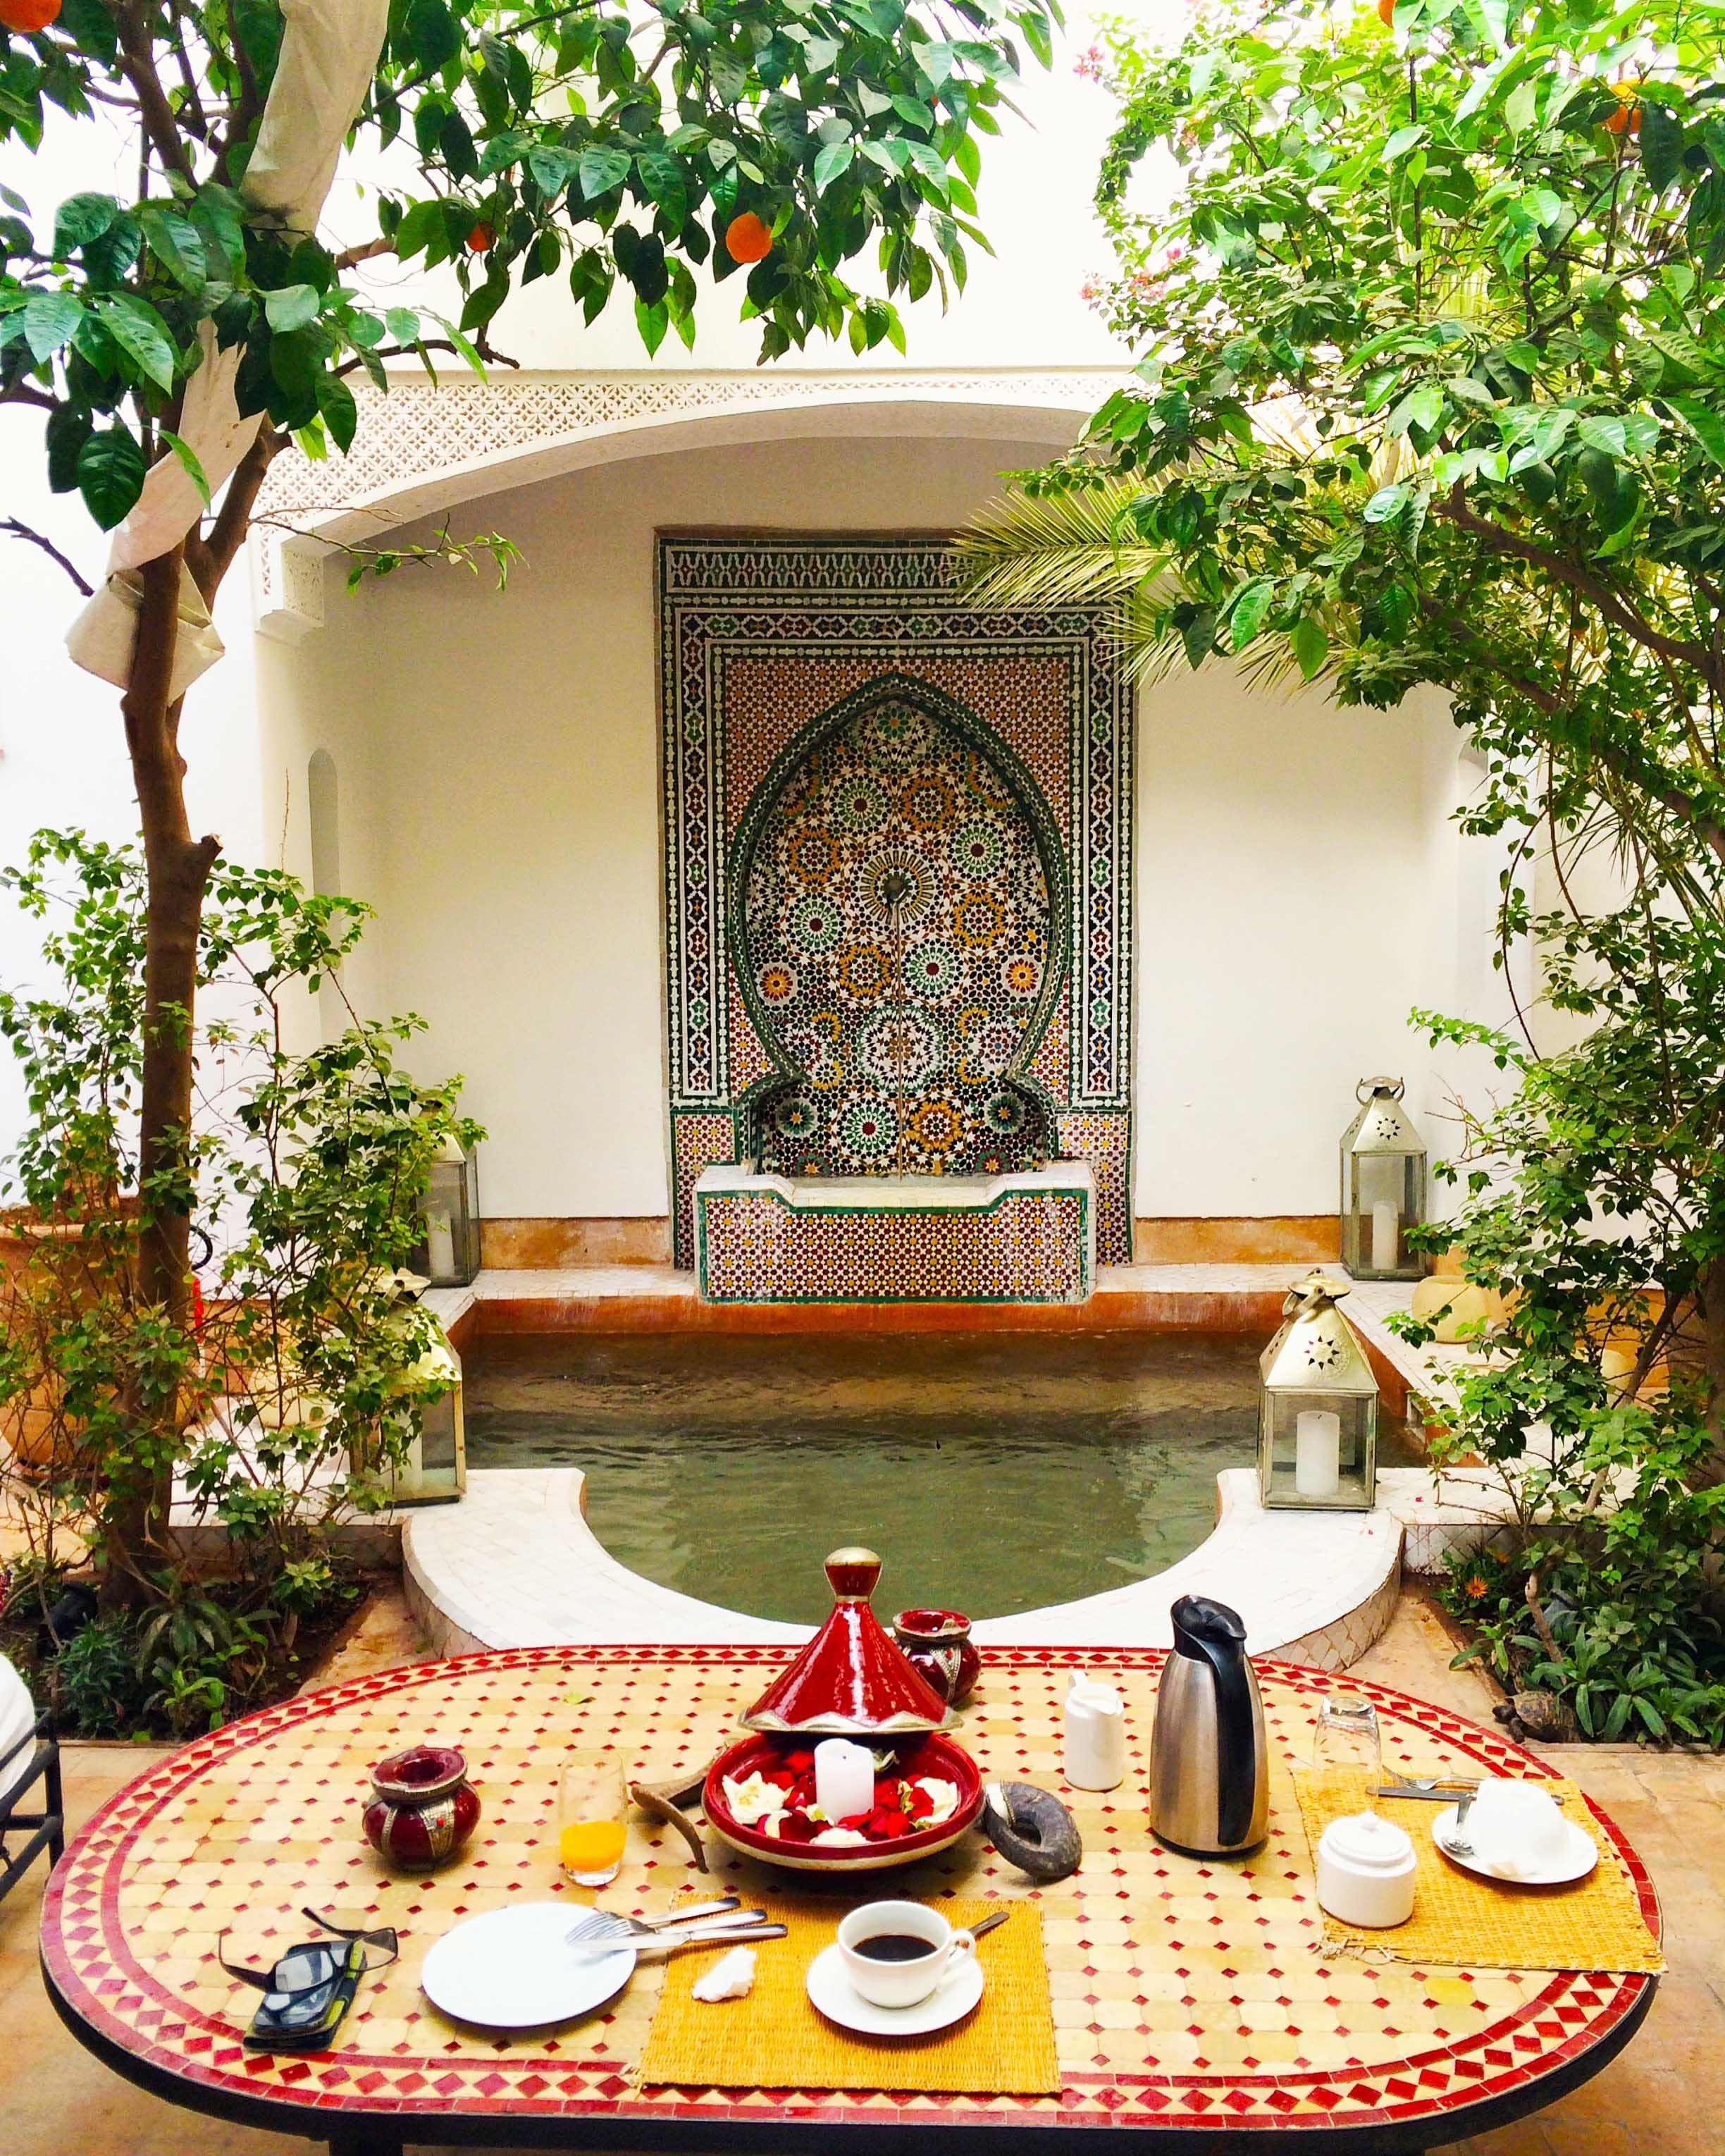 The dining area in Riad Karmela.